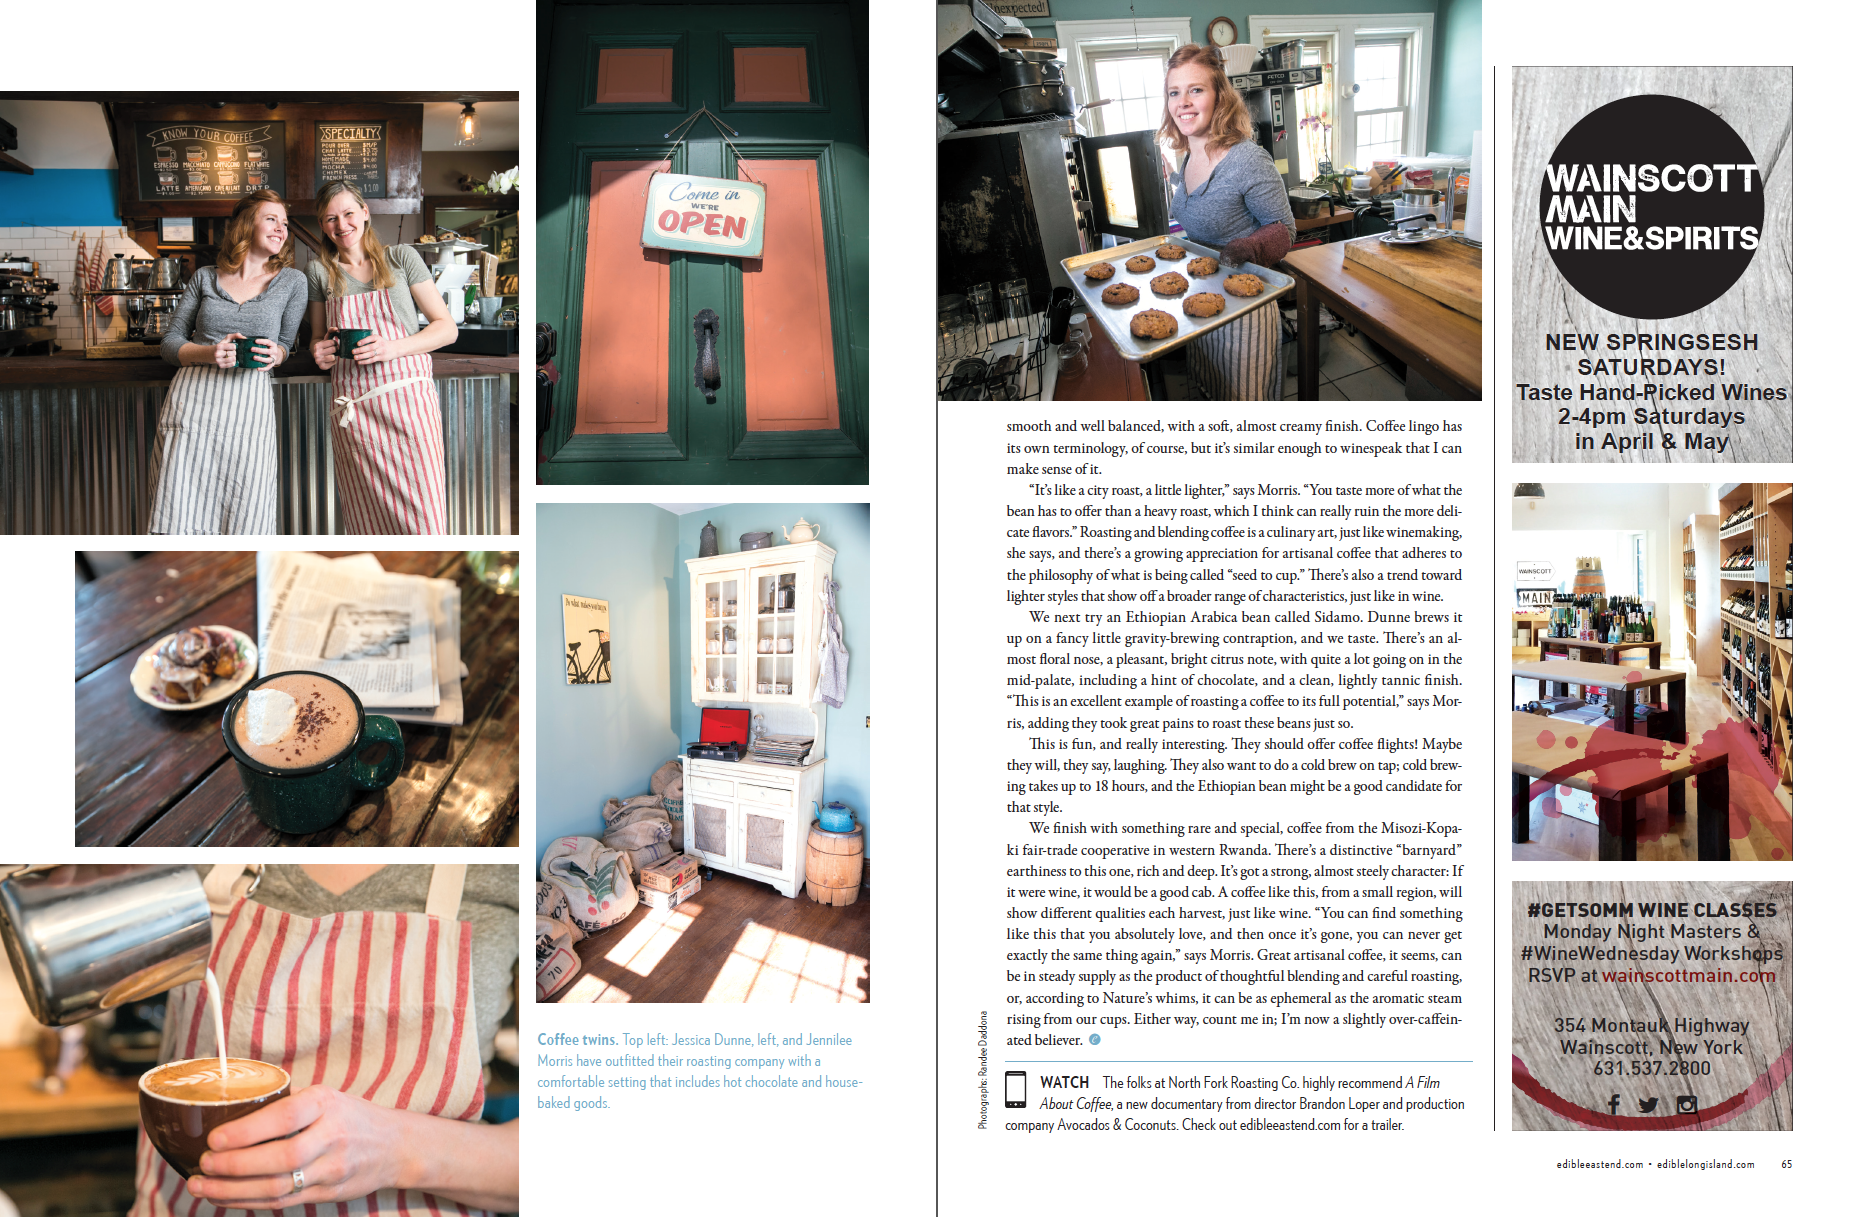 North Fork Roasting Co. (p.2 of 2)